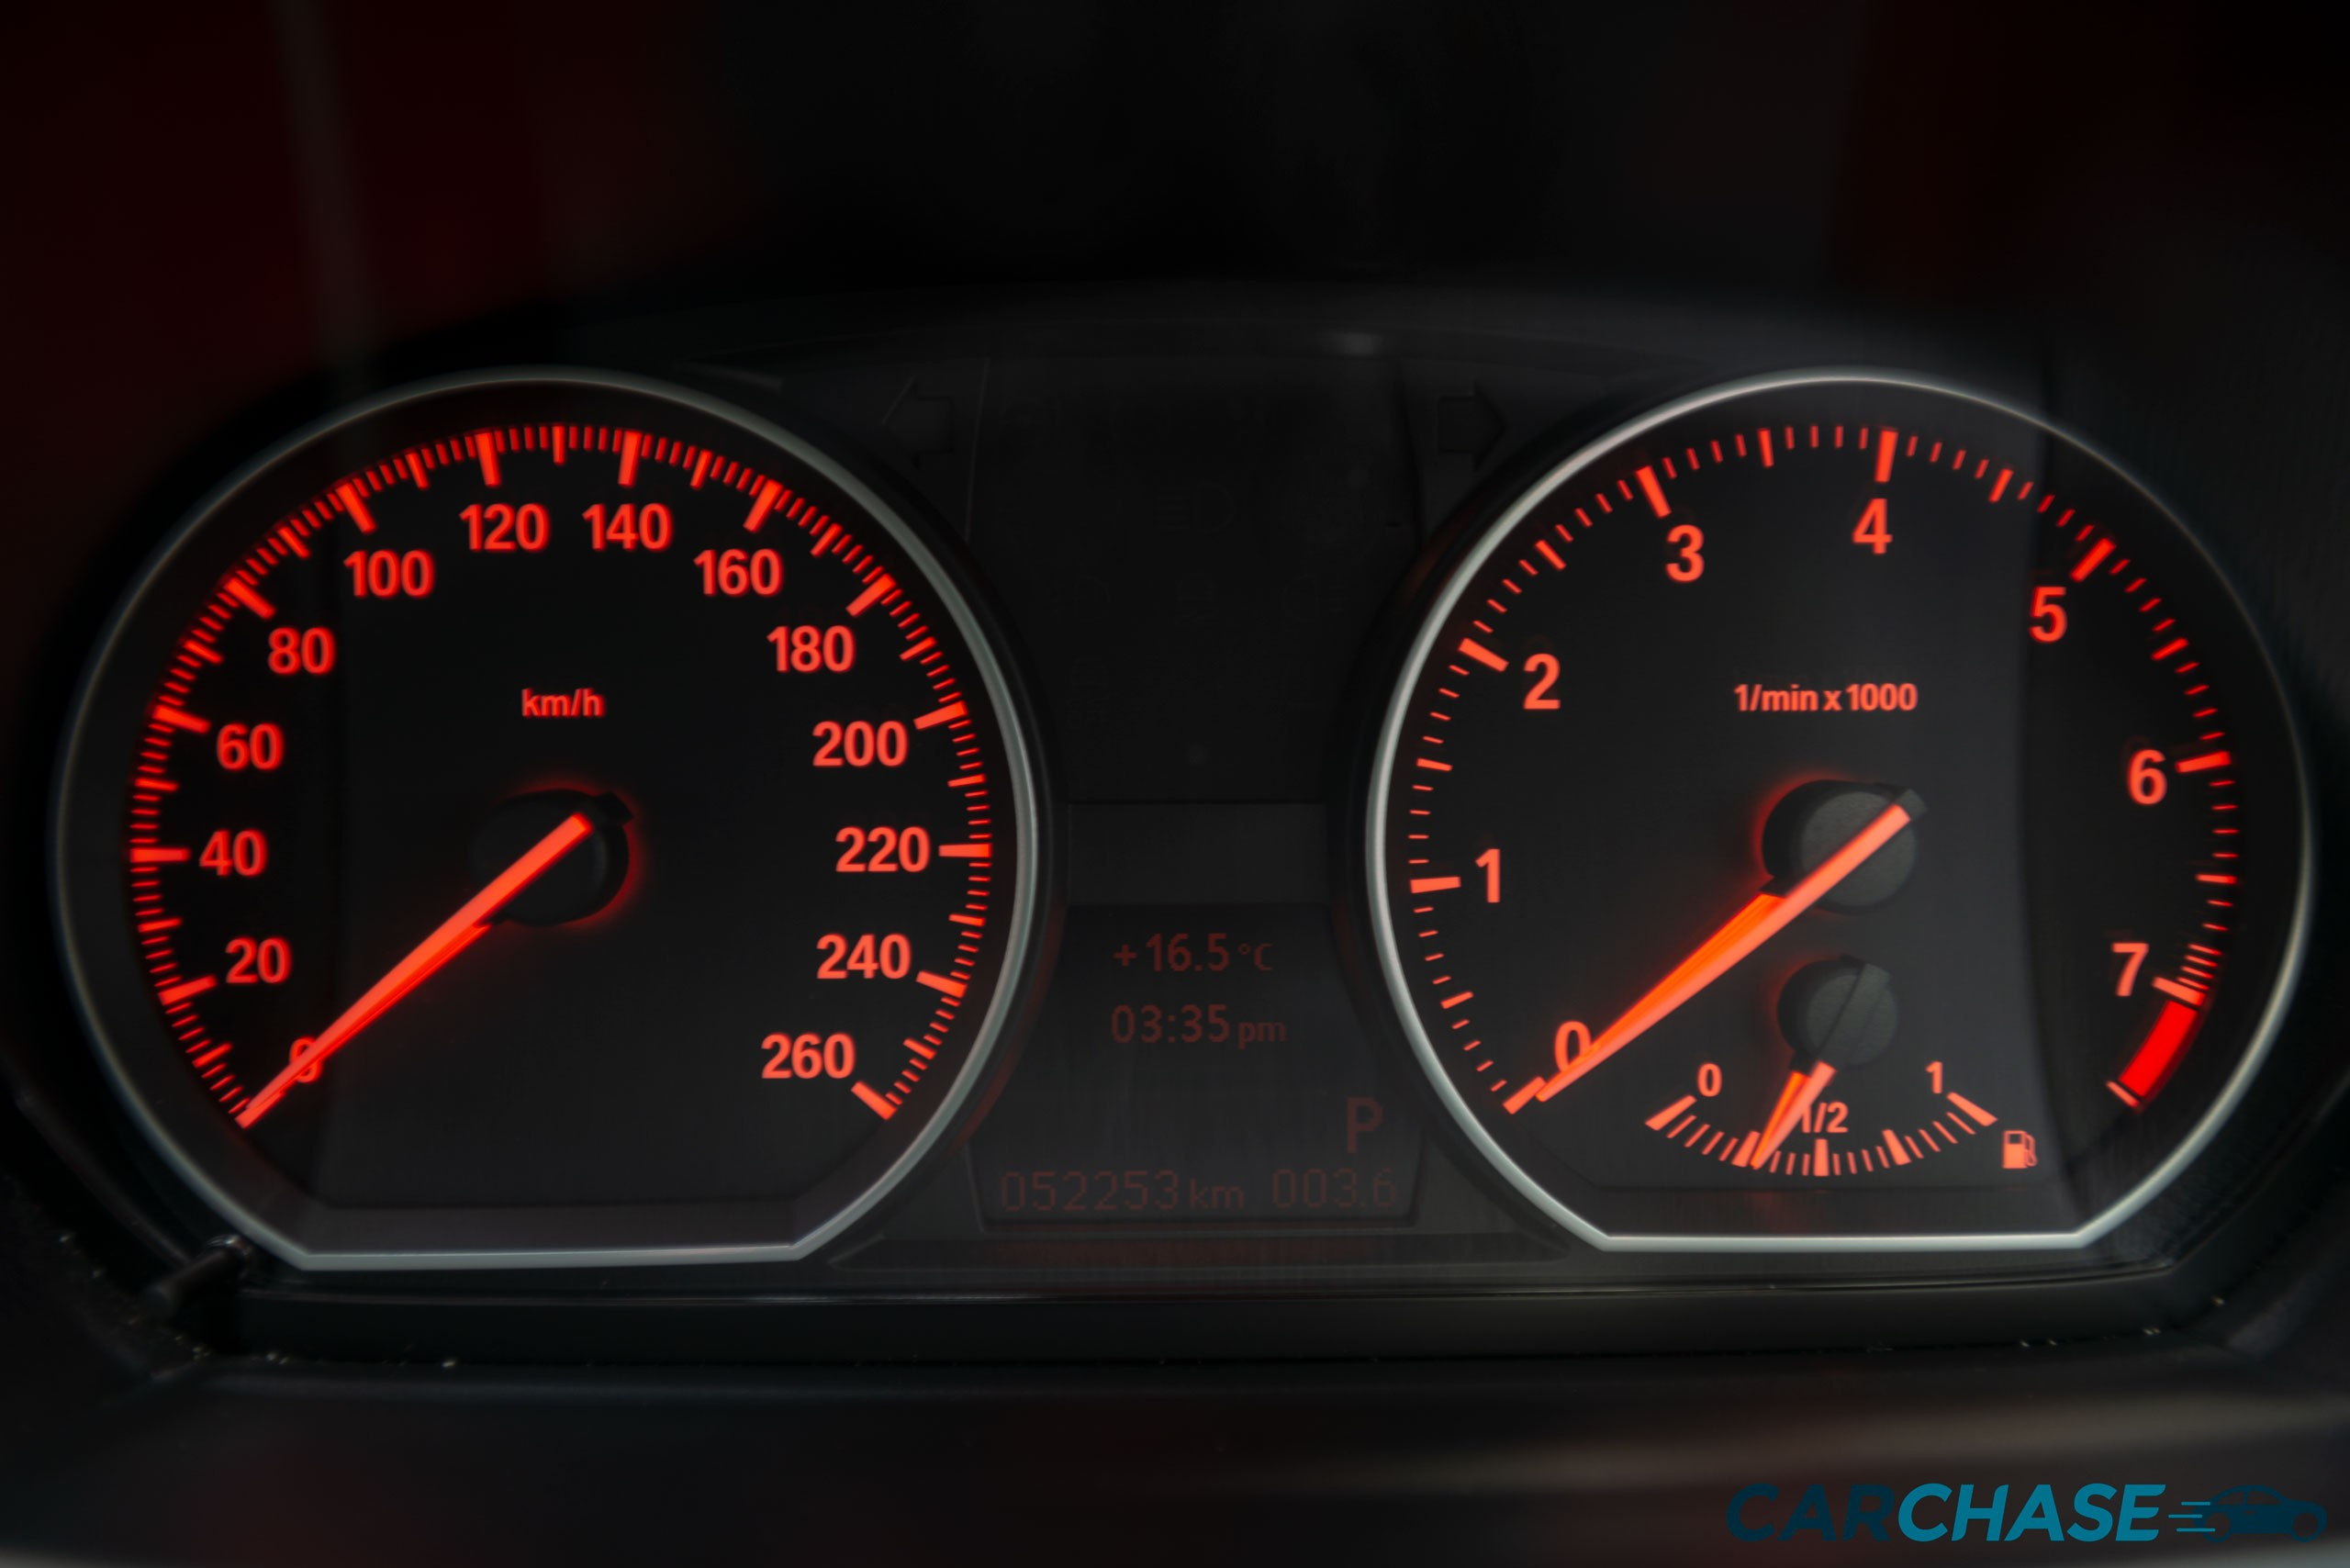 Image of dials profile of 2011 BMW 125i